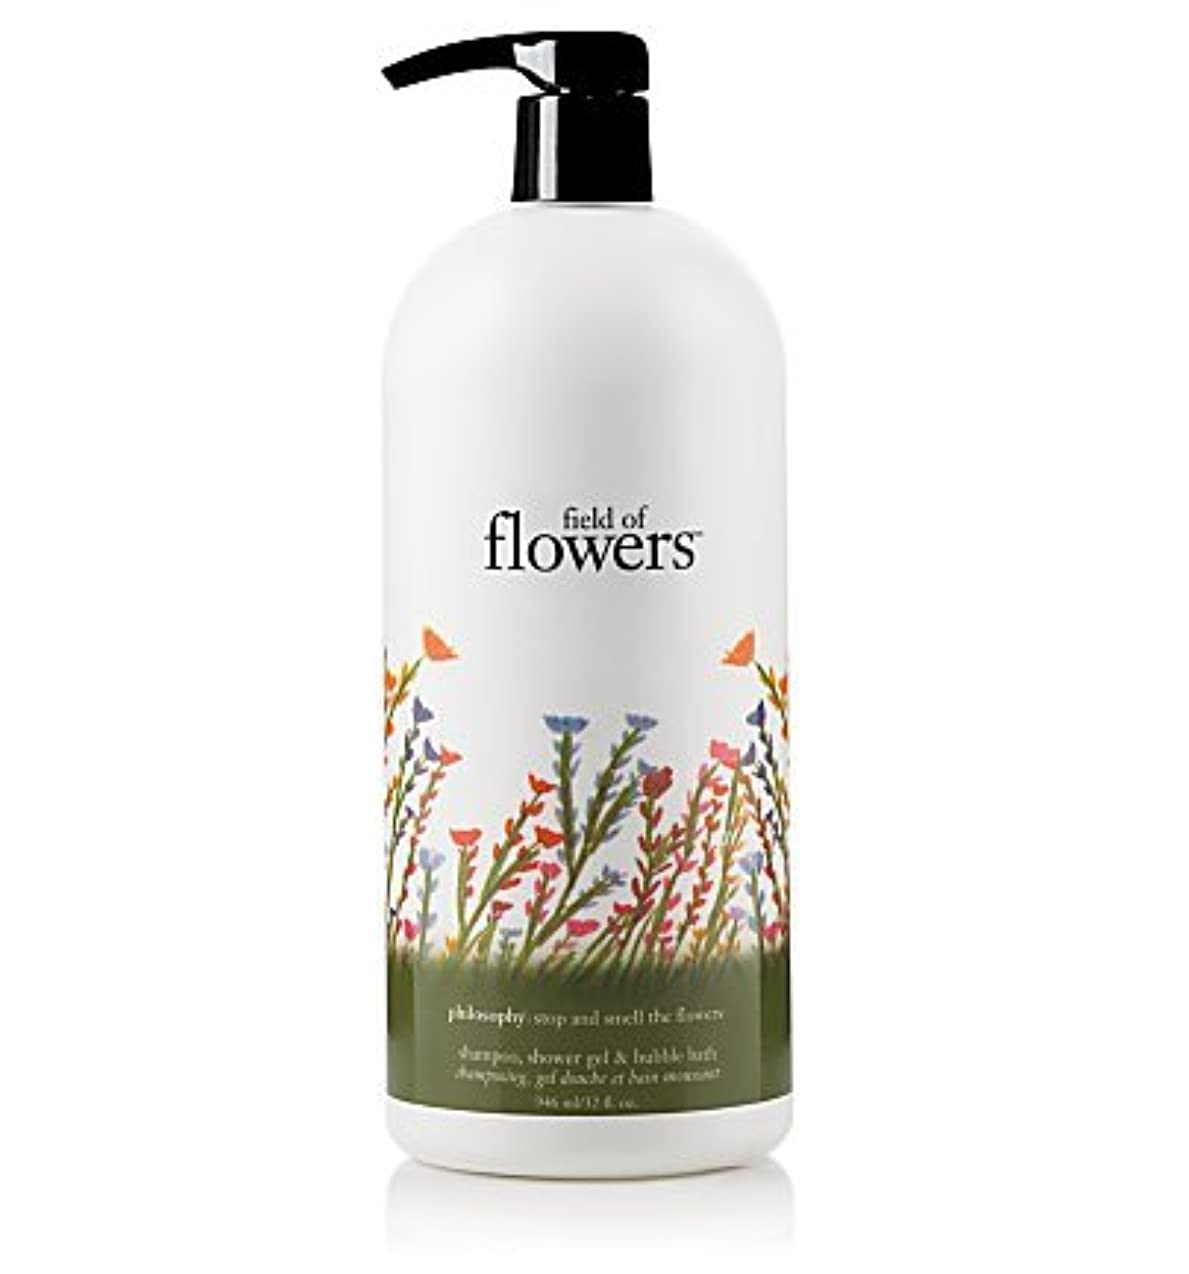 スパイシェーバー辛いfield of flowers (フィールド オブ フラワーズ) 32.0 oz (960ml) shampoo, shower gel & bubble bath for Women